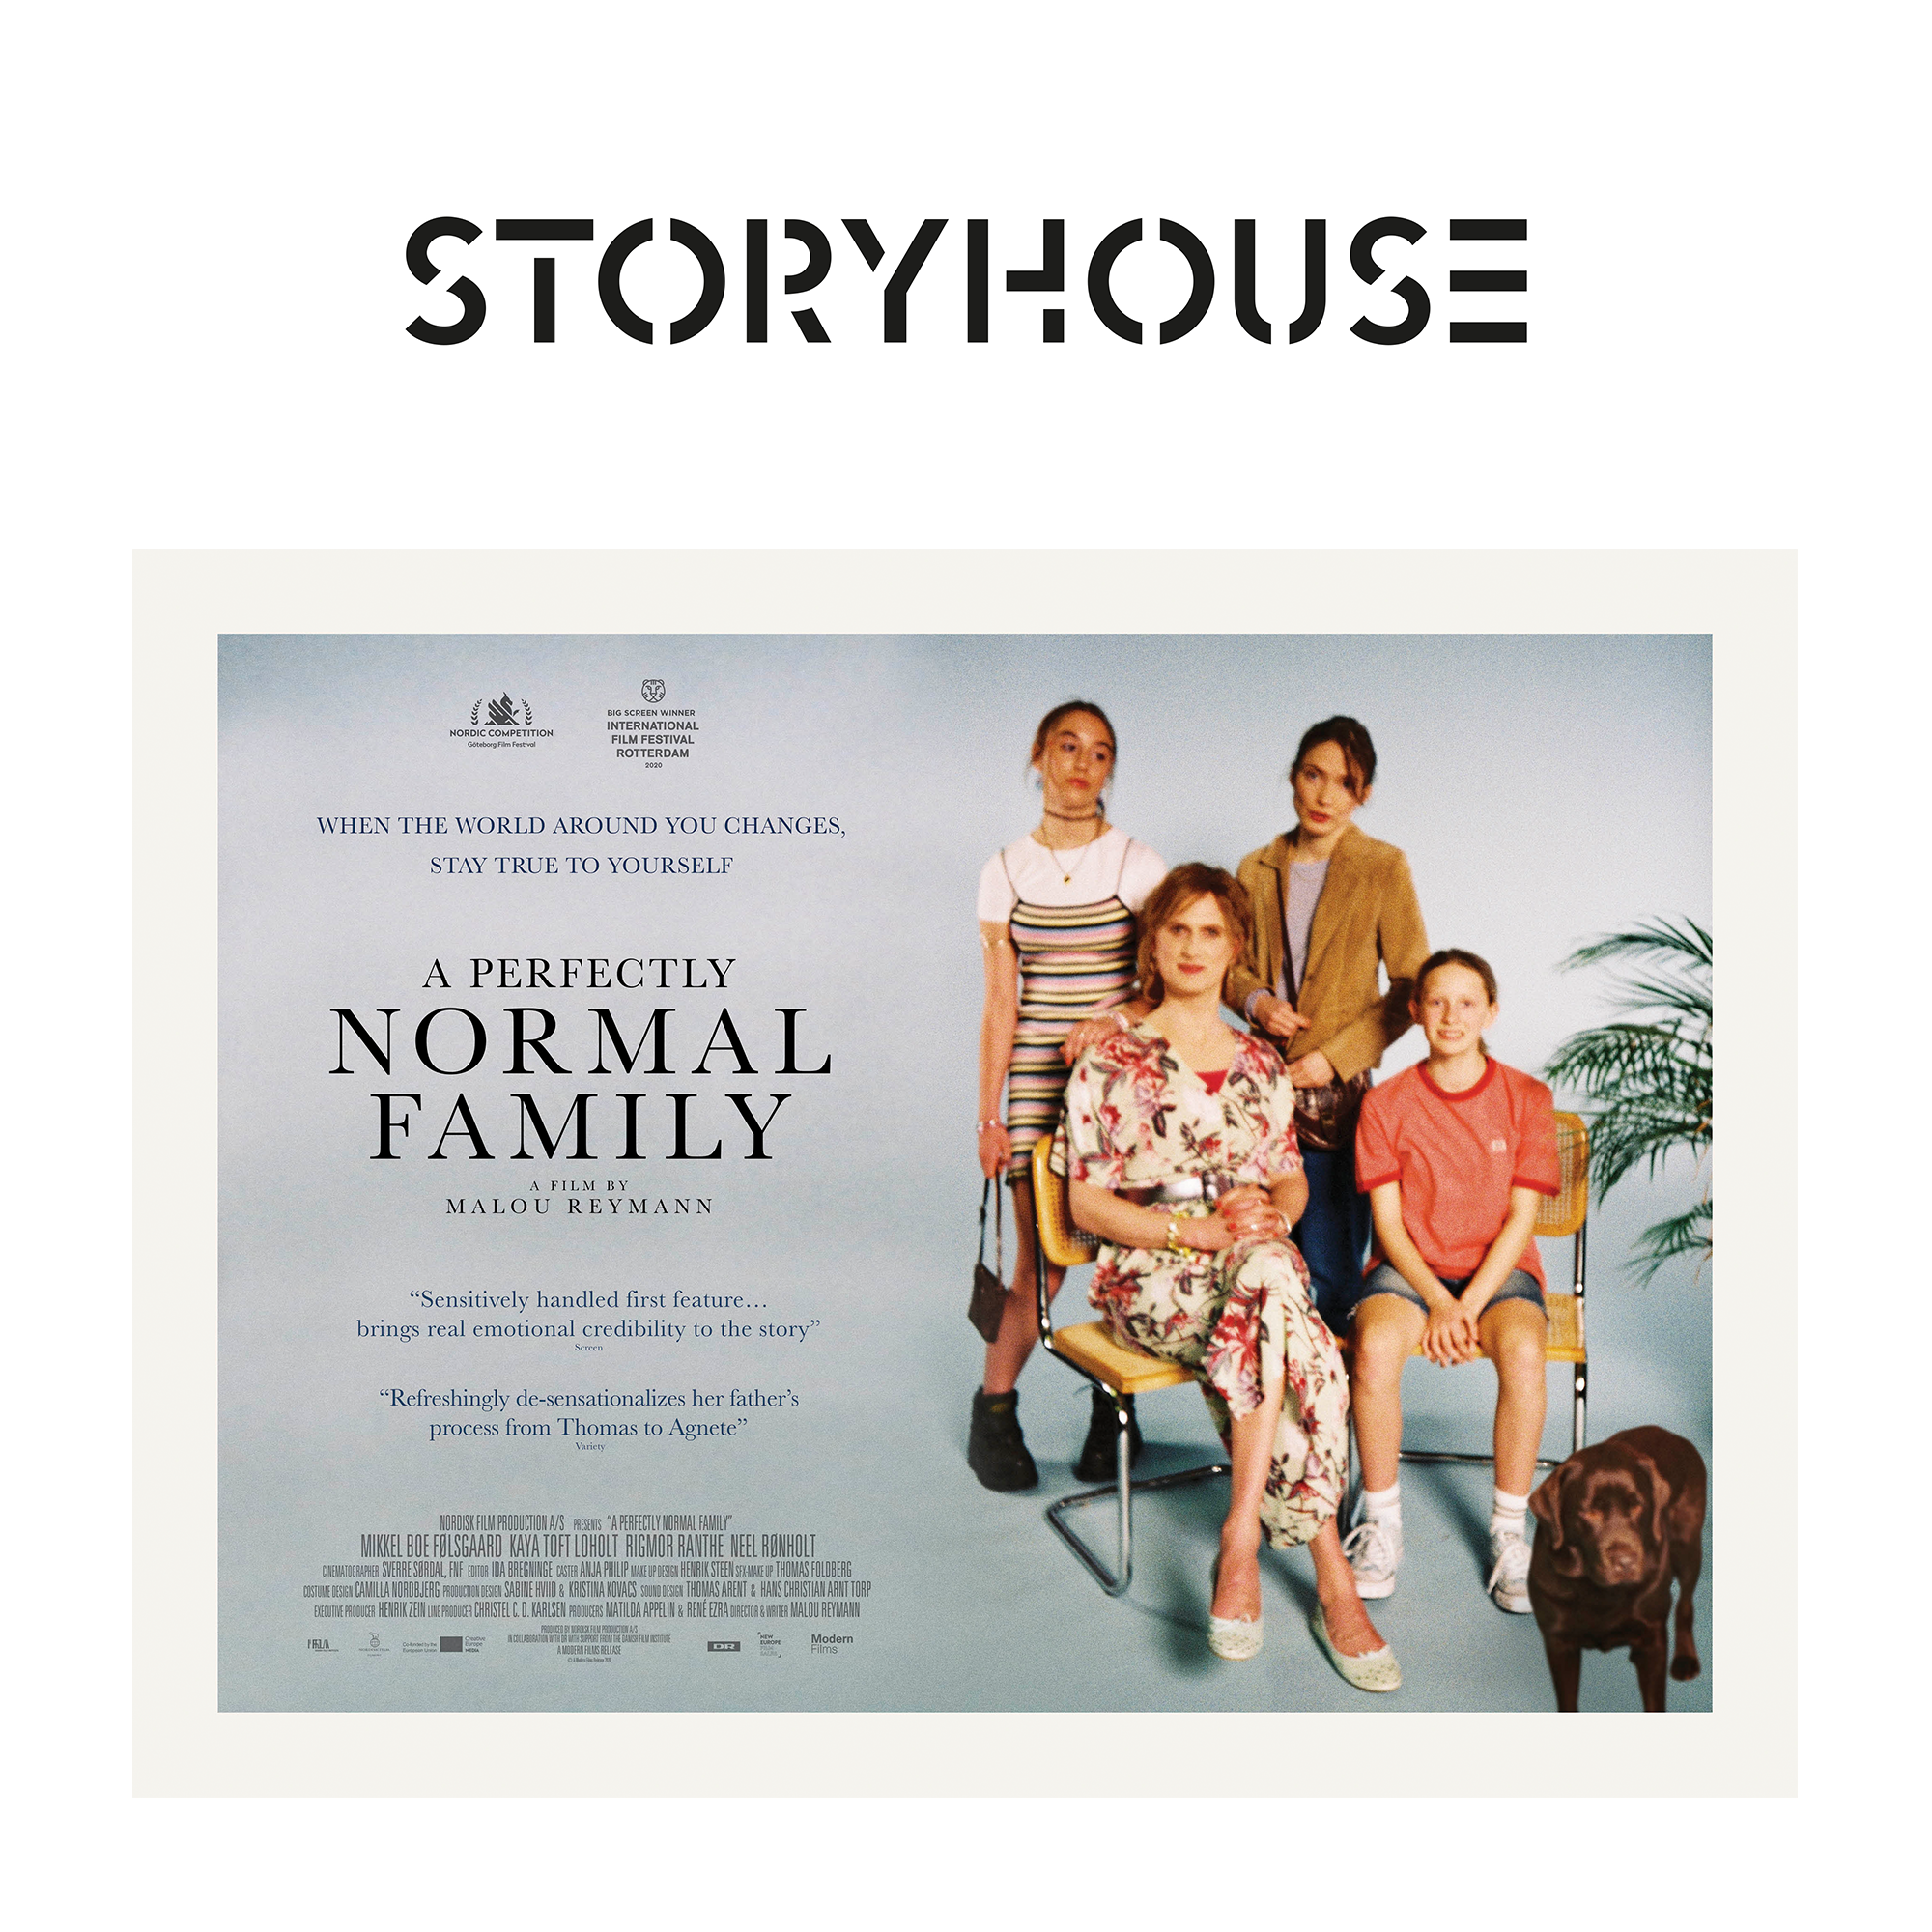 A Perfectly Normal Family at Storyhouse